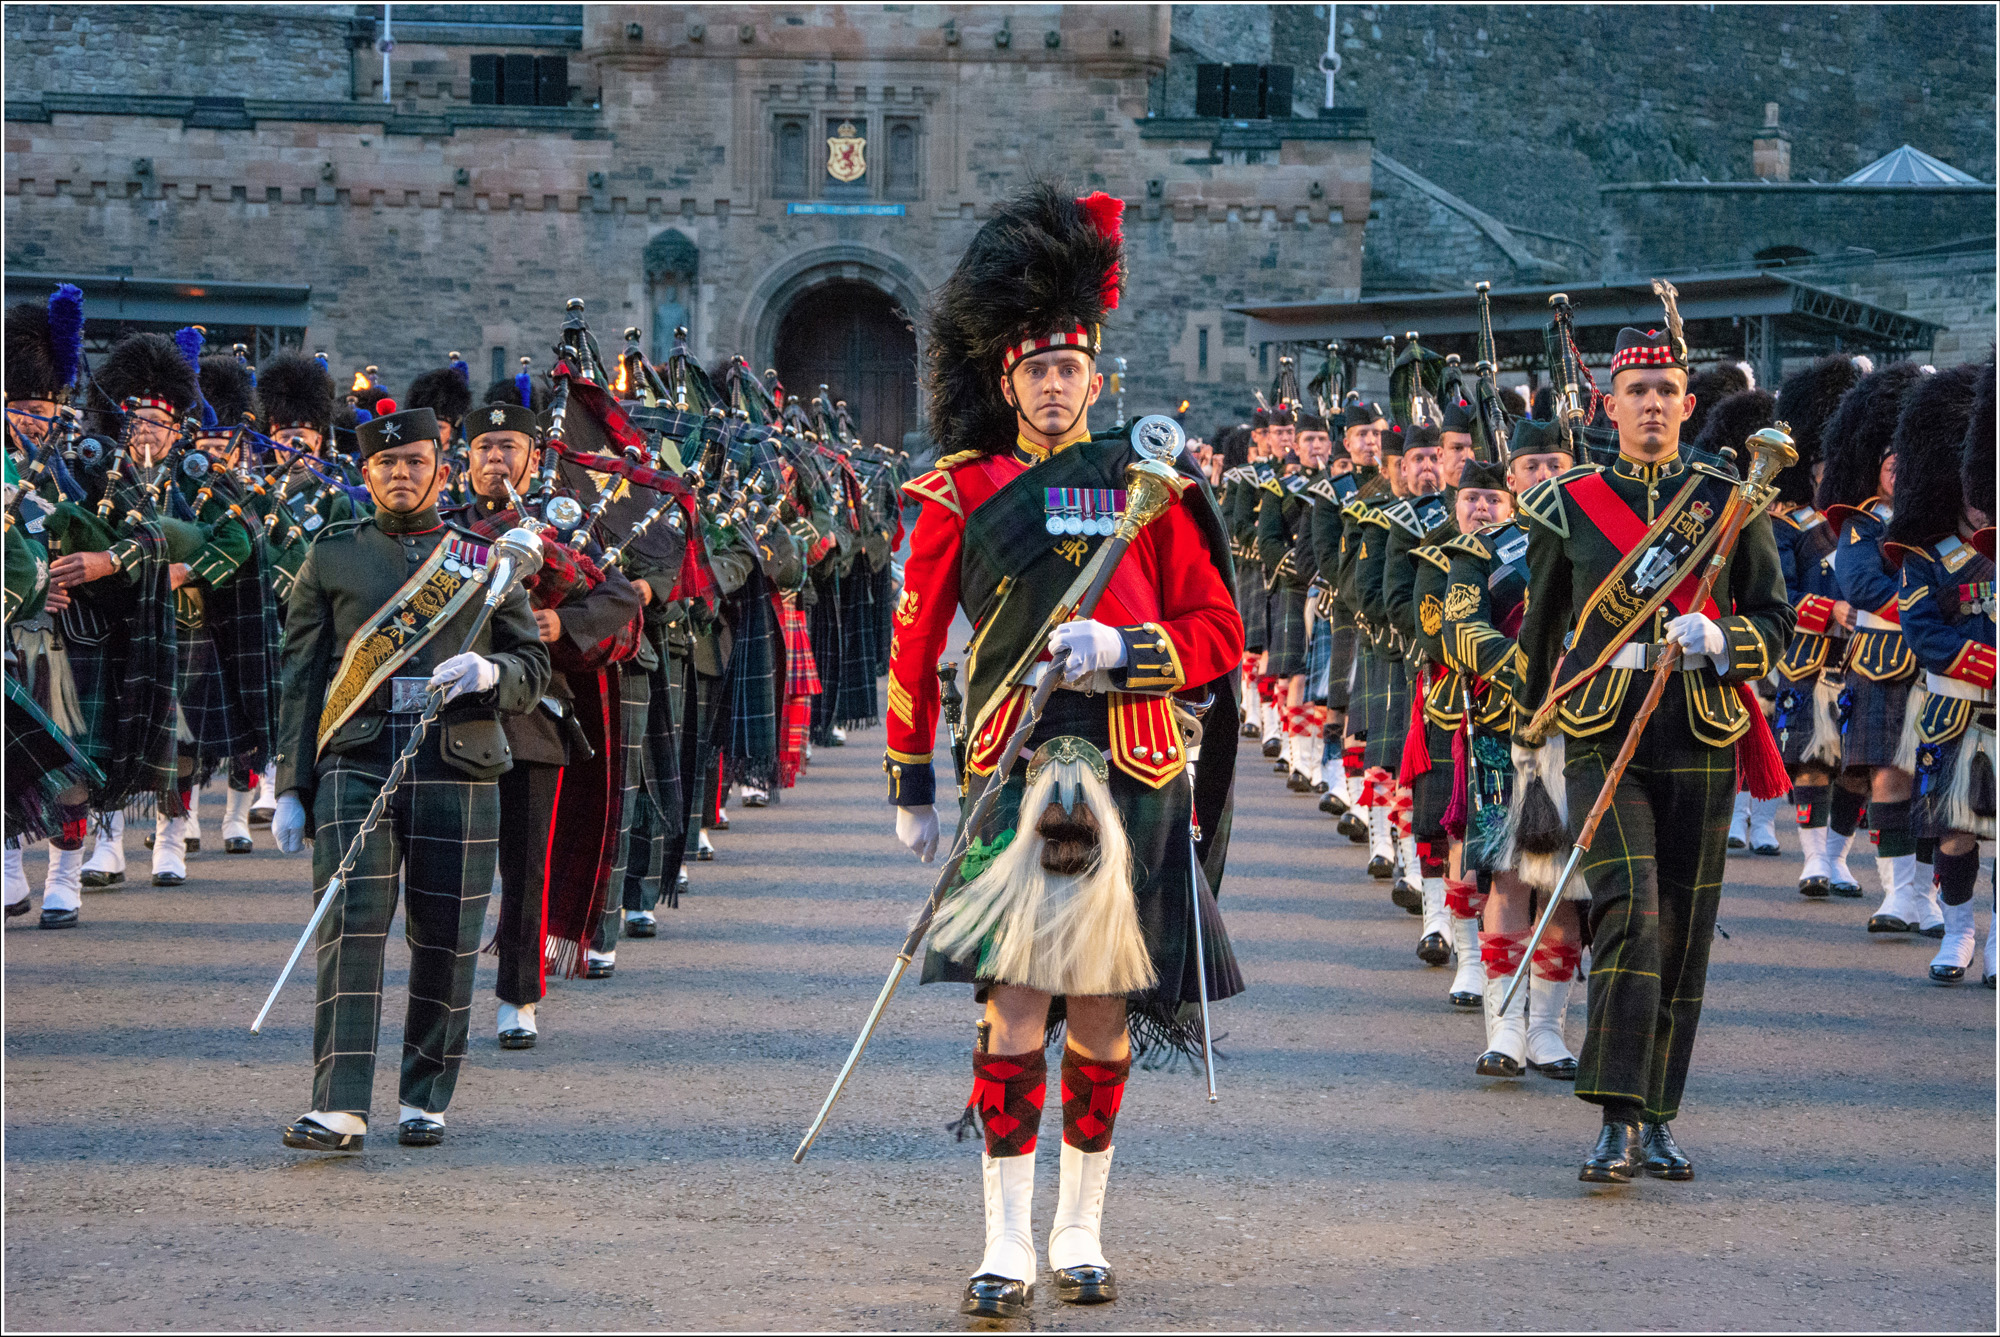 The Massed Band Pipers